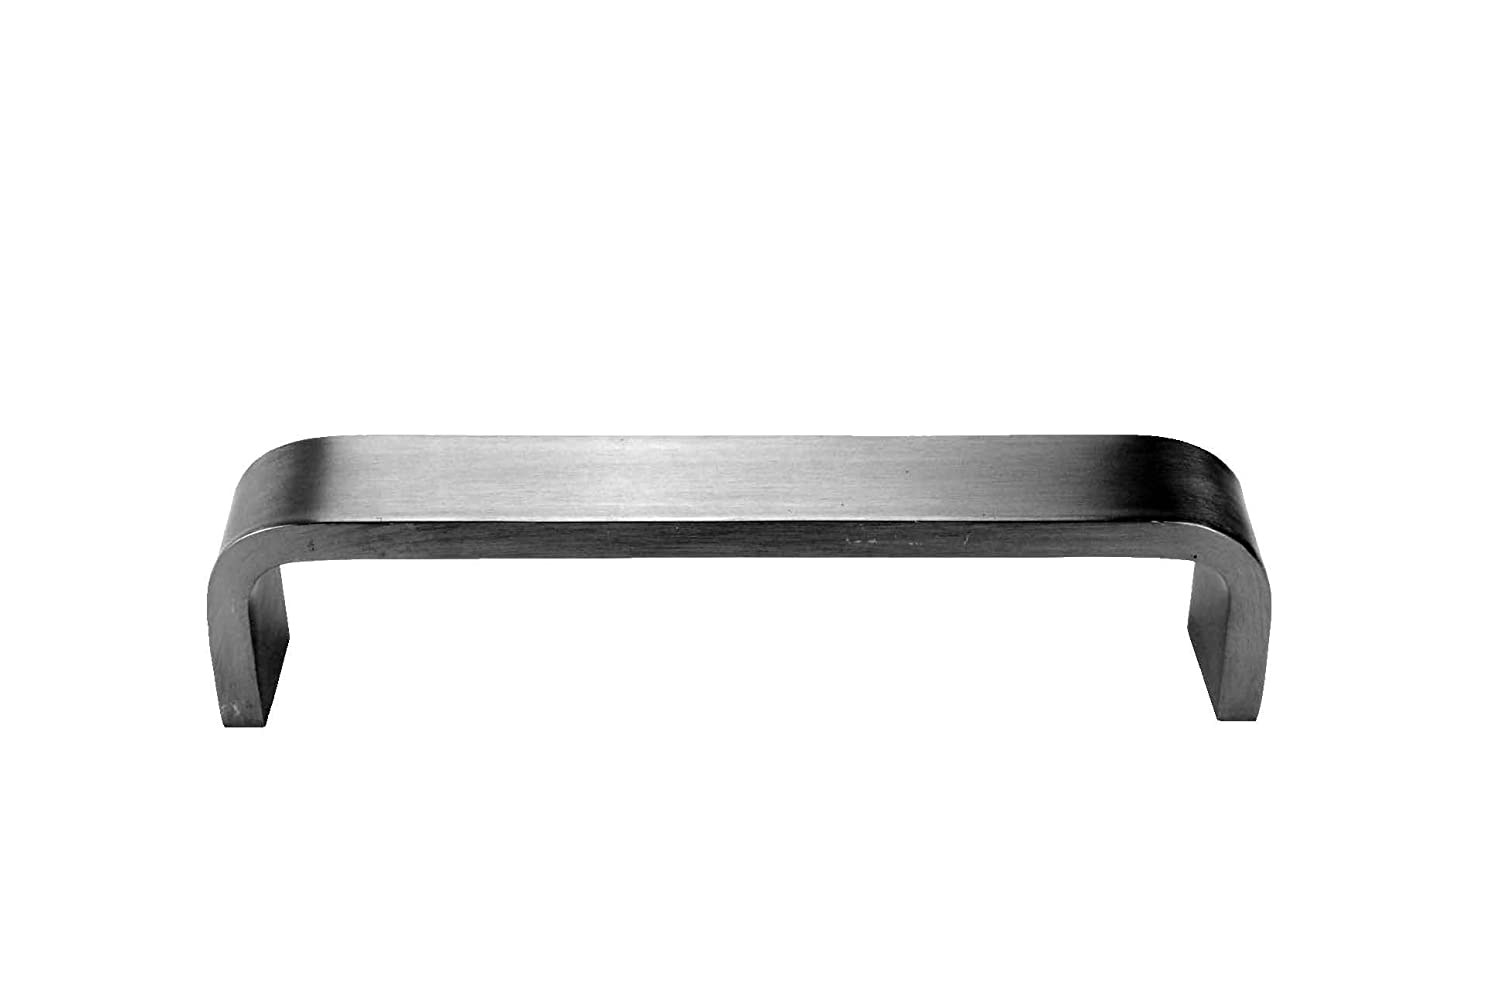 Oil Rubbed Bronze Finish 2 Projection 10 Center-to-Center 1-5//8 Clearance Rectangular Don-Jo 32 Solid Bar Stock Flat Bar Door Pull with Through Holes